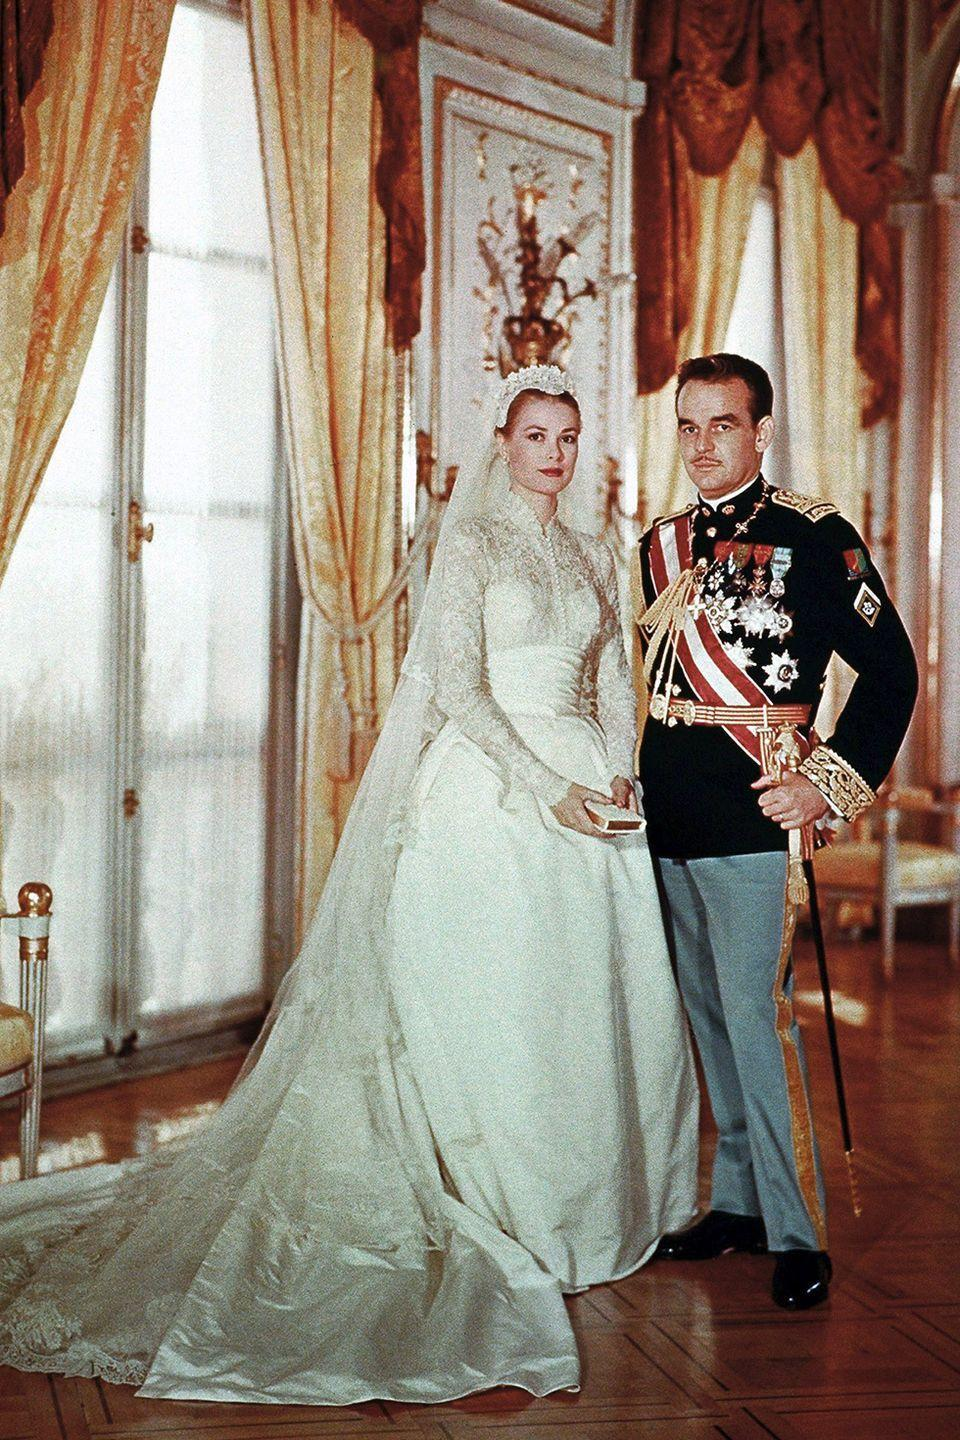 """<p>Talk about fit for a princess! One of the most iconic and elegant bridal gowns of all time, Grace Kelly's dress was so influential that even Kate Middleton reportedly took inspiration from it. Worn during her wedding to Prince Rainier III of Monaco, it was also designed by Helen Rose.</p><p><strong>RELATED</strong>: <a href=""""https://www.goodhousekeeping.com/beauty/fashion/g4719/grace-kelly-wedding-gown/"""" rel=""""nofollow noopener"""" target=""""_blank"""" data-ylk=""""slk:10 Hidden Details You Didn't Know About Grace Kelly's Wedding Dress"""" class=""""link rapid-noclick-resp"""">10 Hidden Details You Didn't Know About Grace Kelly's Wedding Dress</a></p>"""